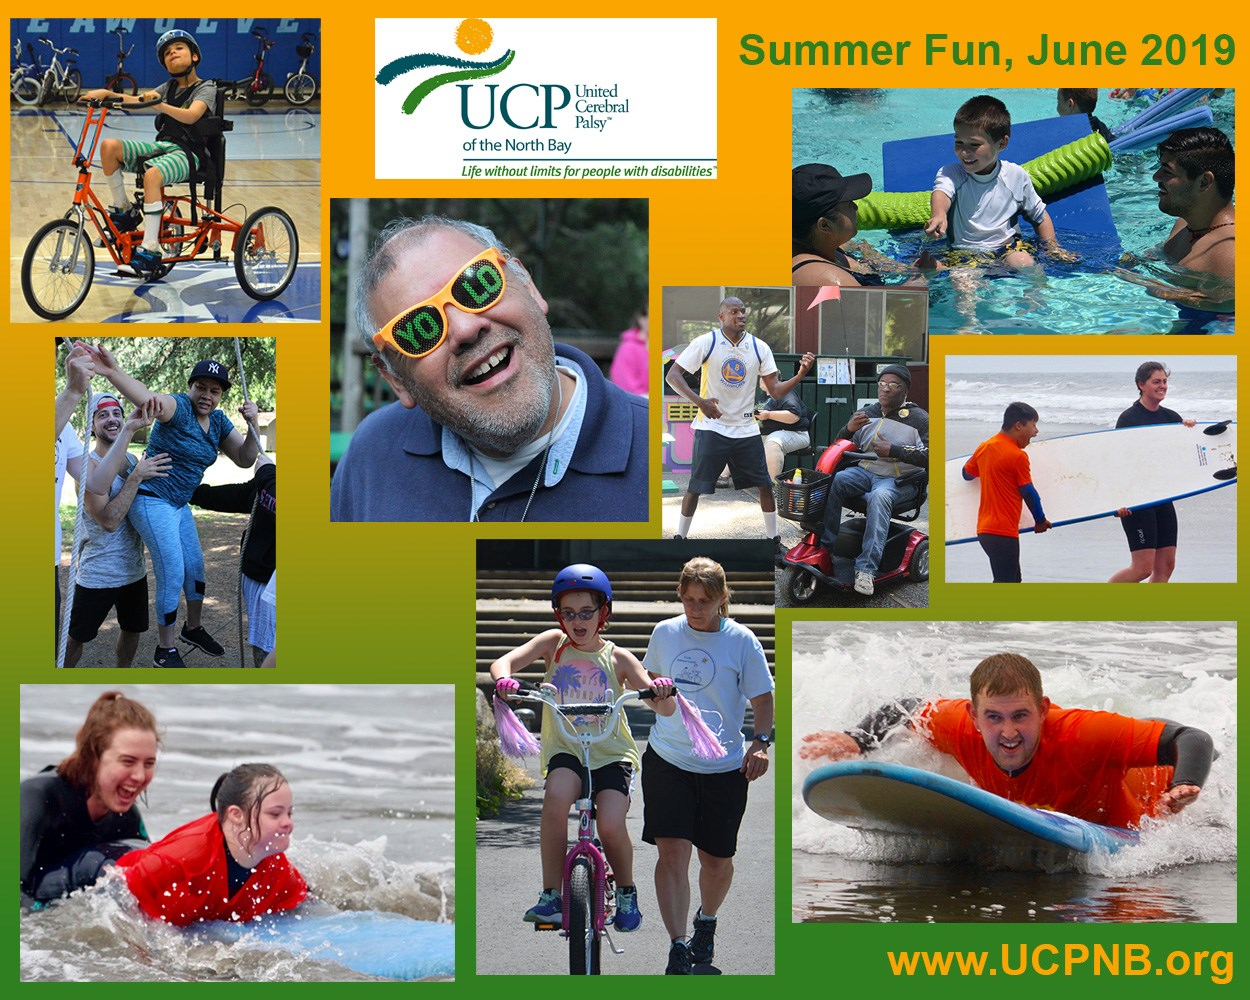 Summer Fun with UCPNB